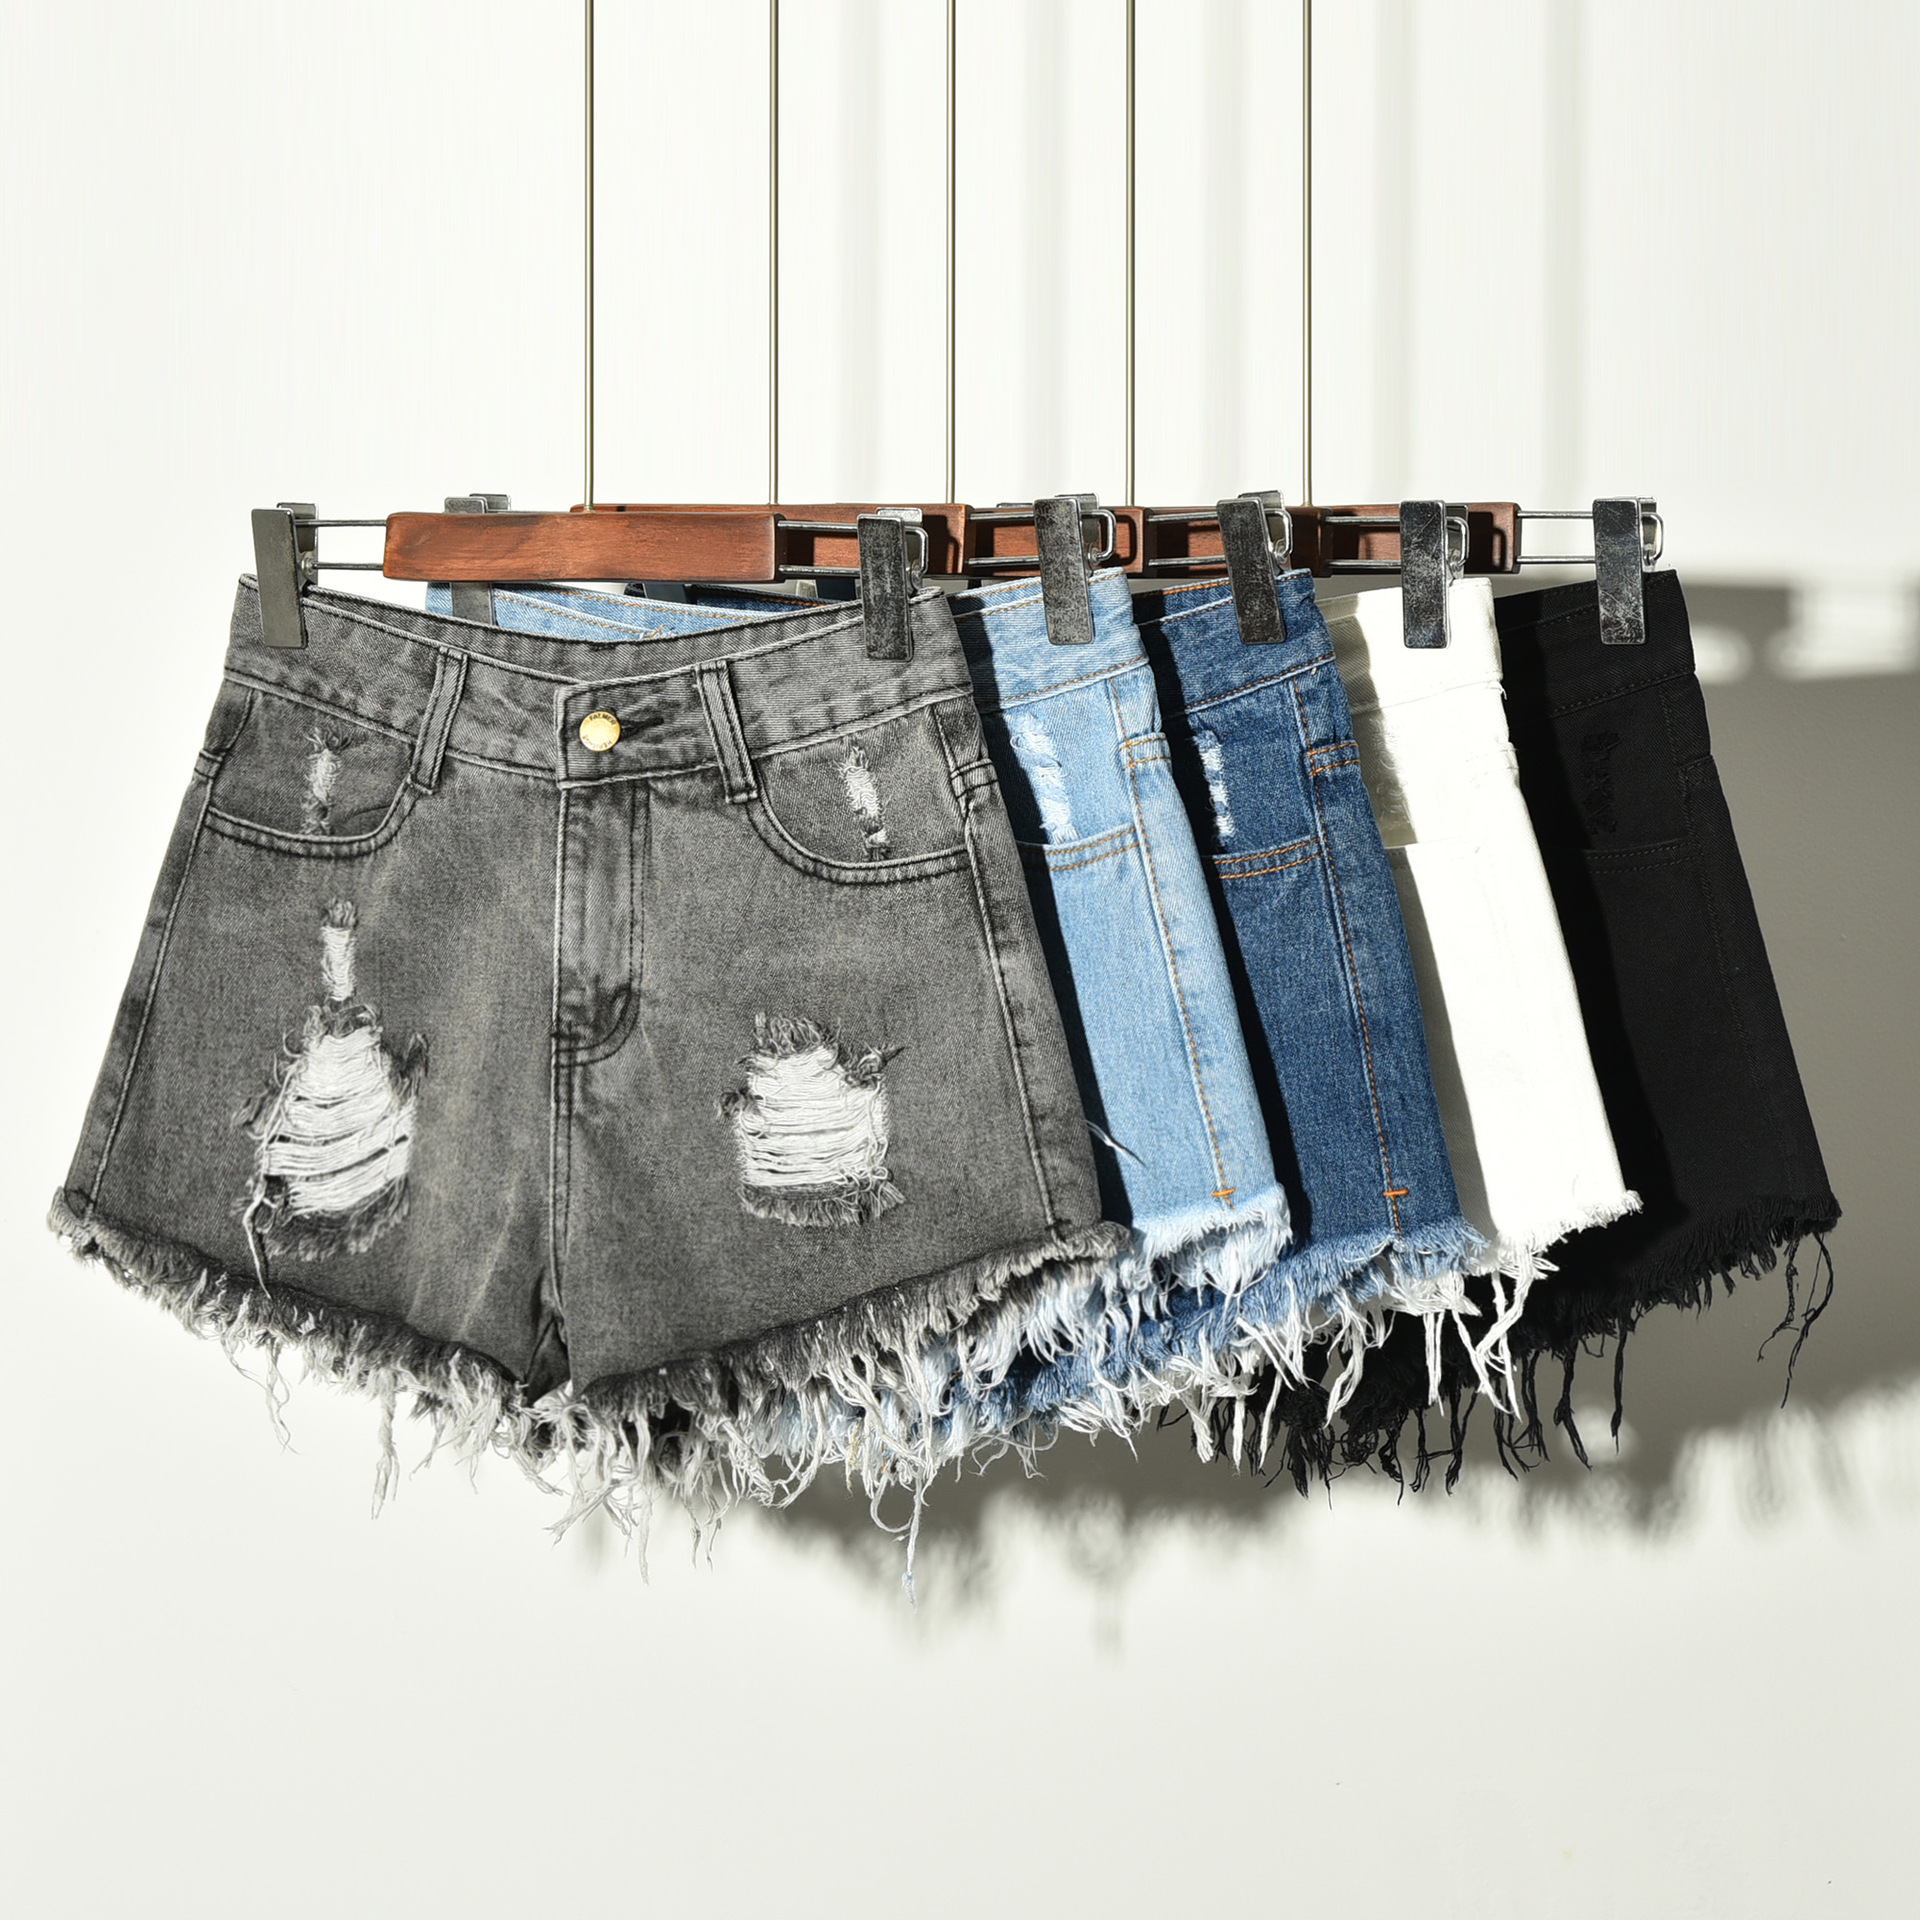 New Arrival Casual Summer Hole Tassel Denim Casual Women Shorts  Plus Size Sexy Fashion Women's Jeans Shorts